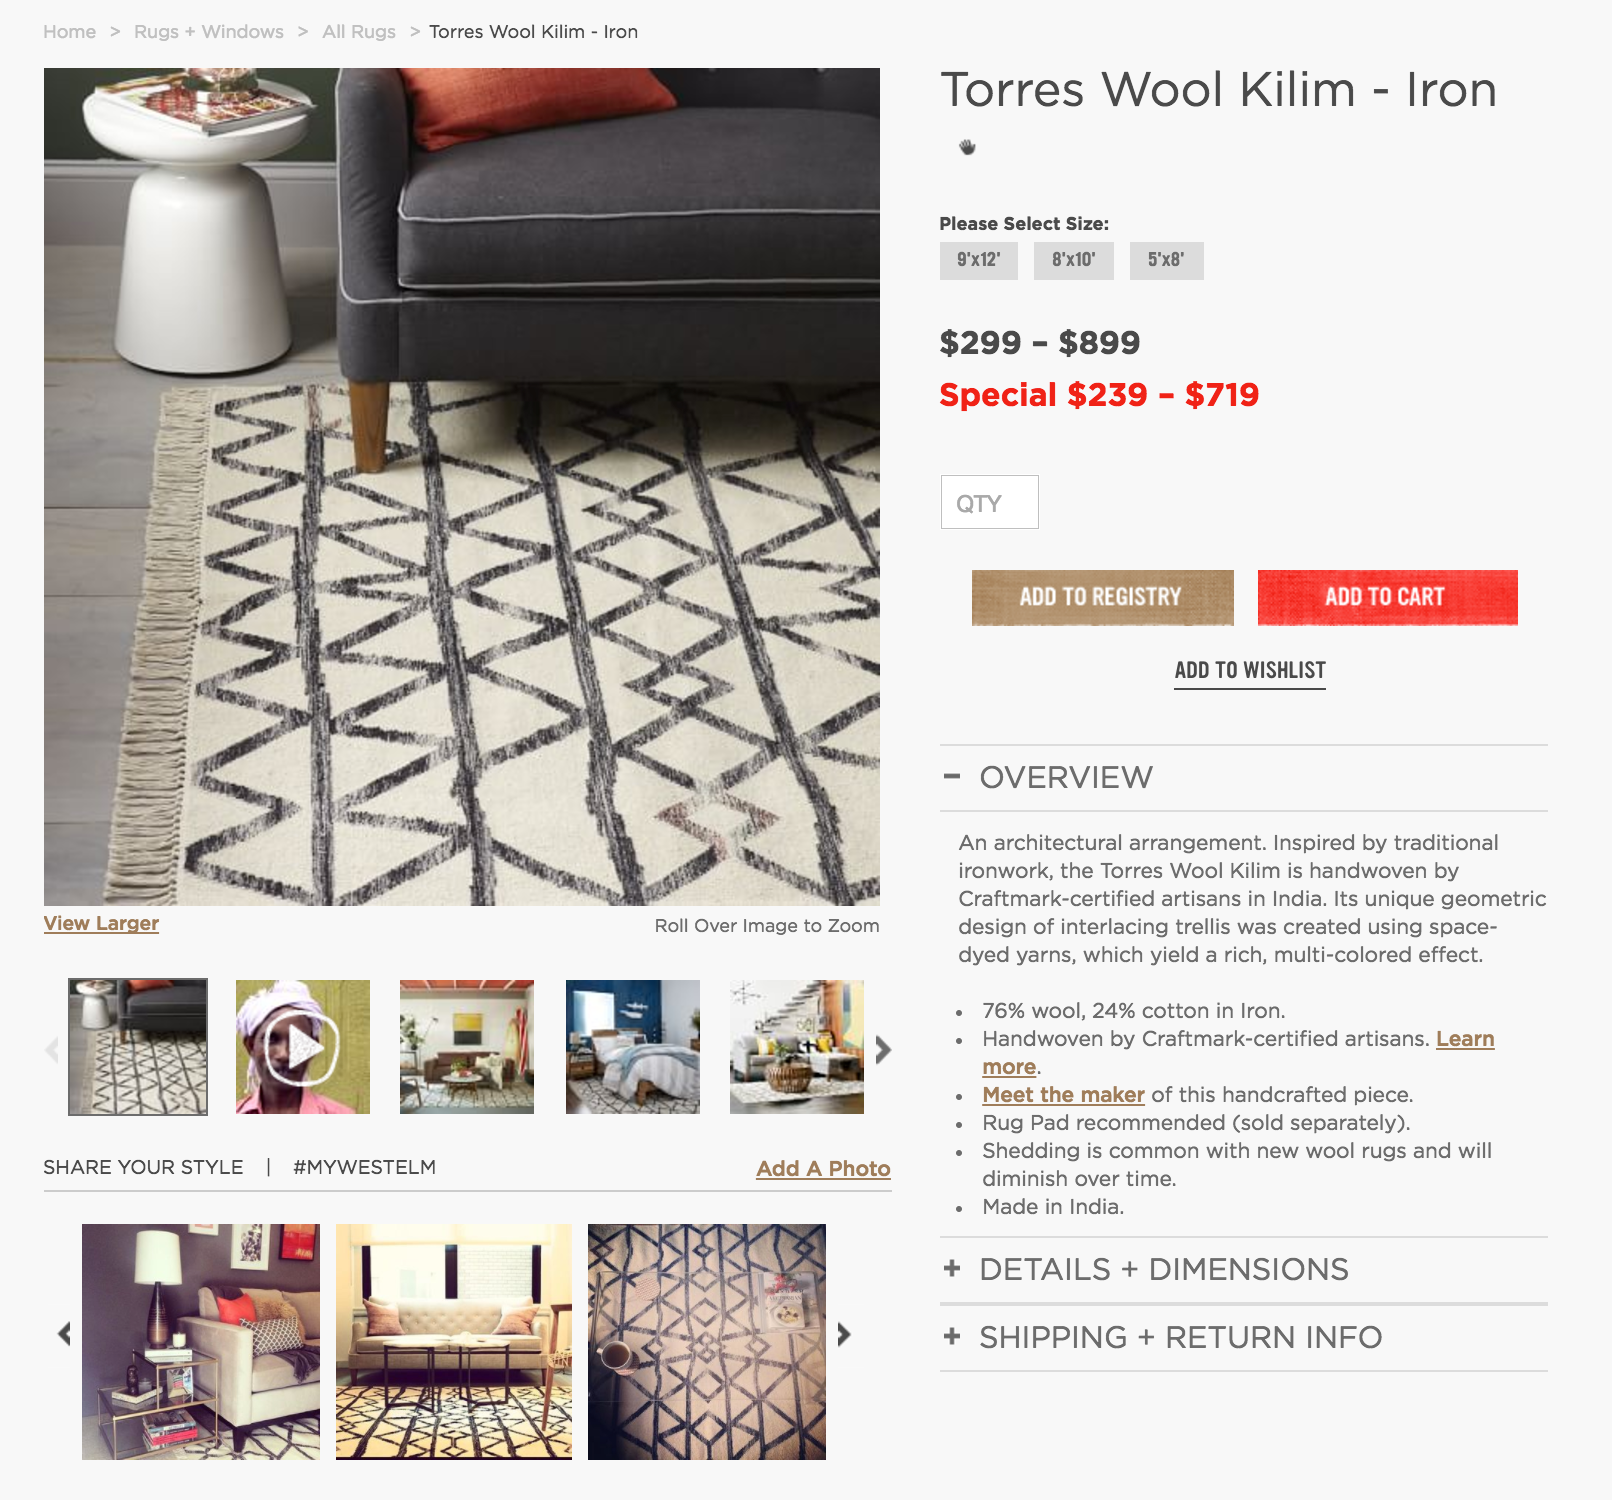 Westelm user-generated content. Instagram marketing